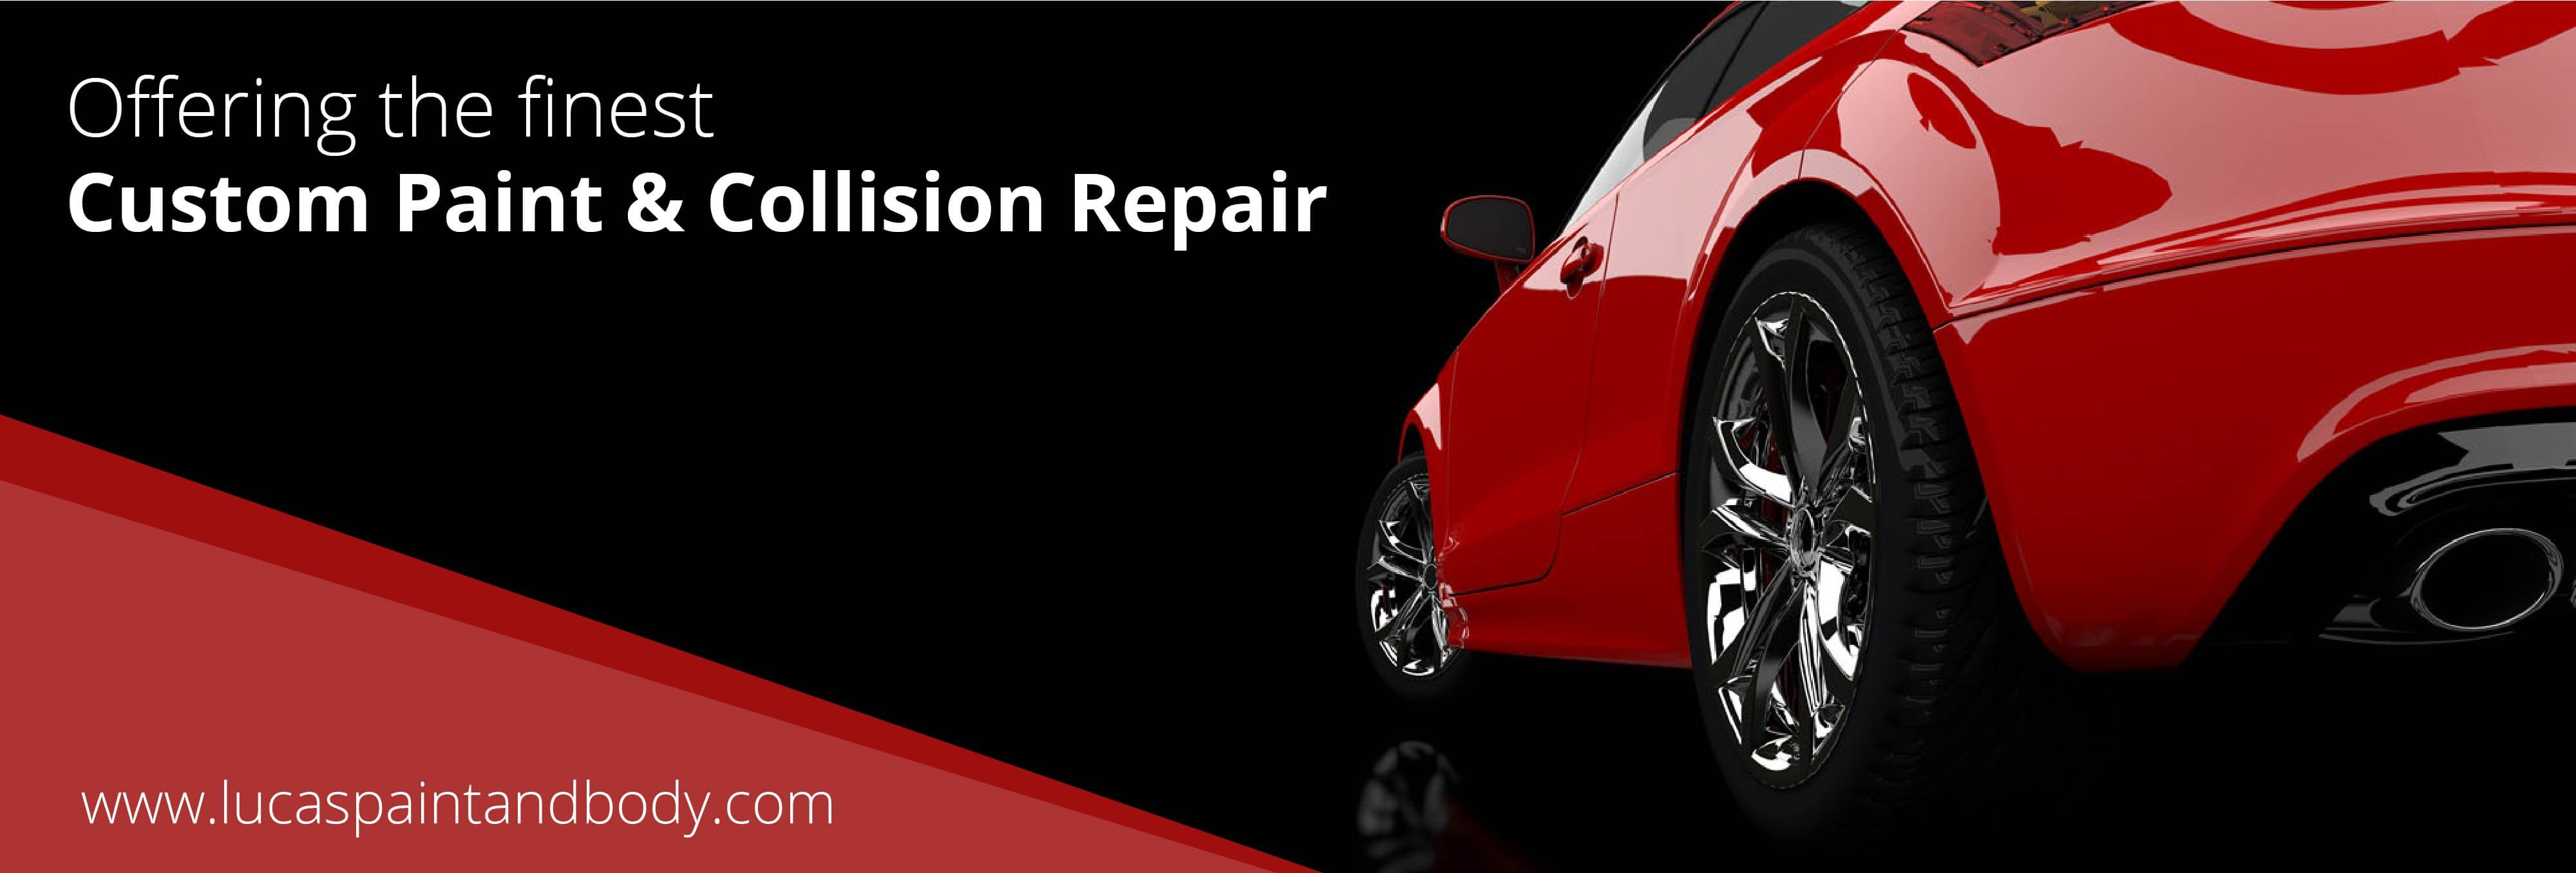 Paint and Body Houston, Collision Repair, Dent Repair | Lucas Paint and Body